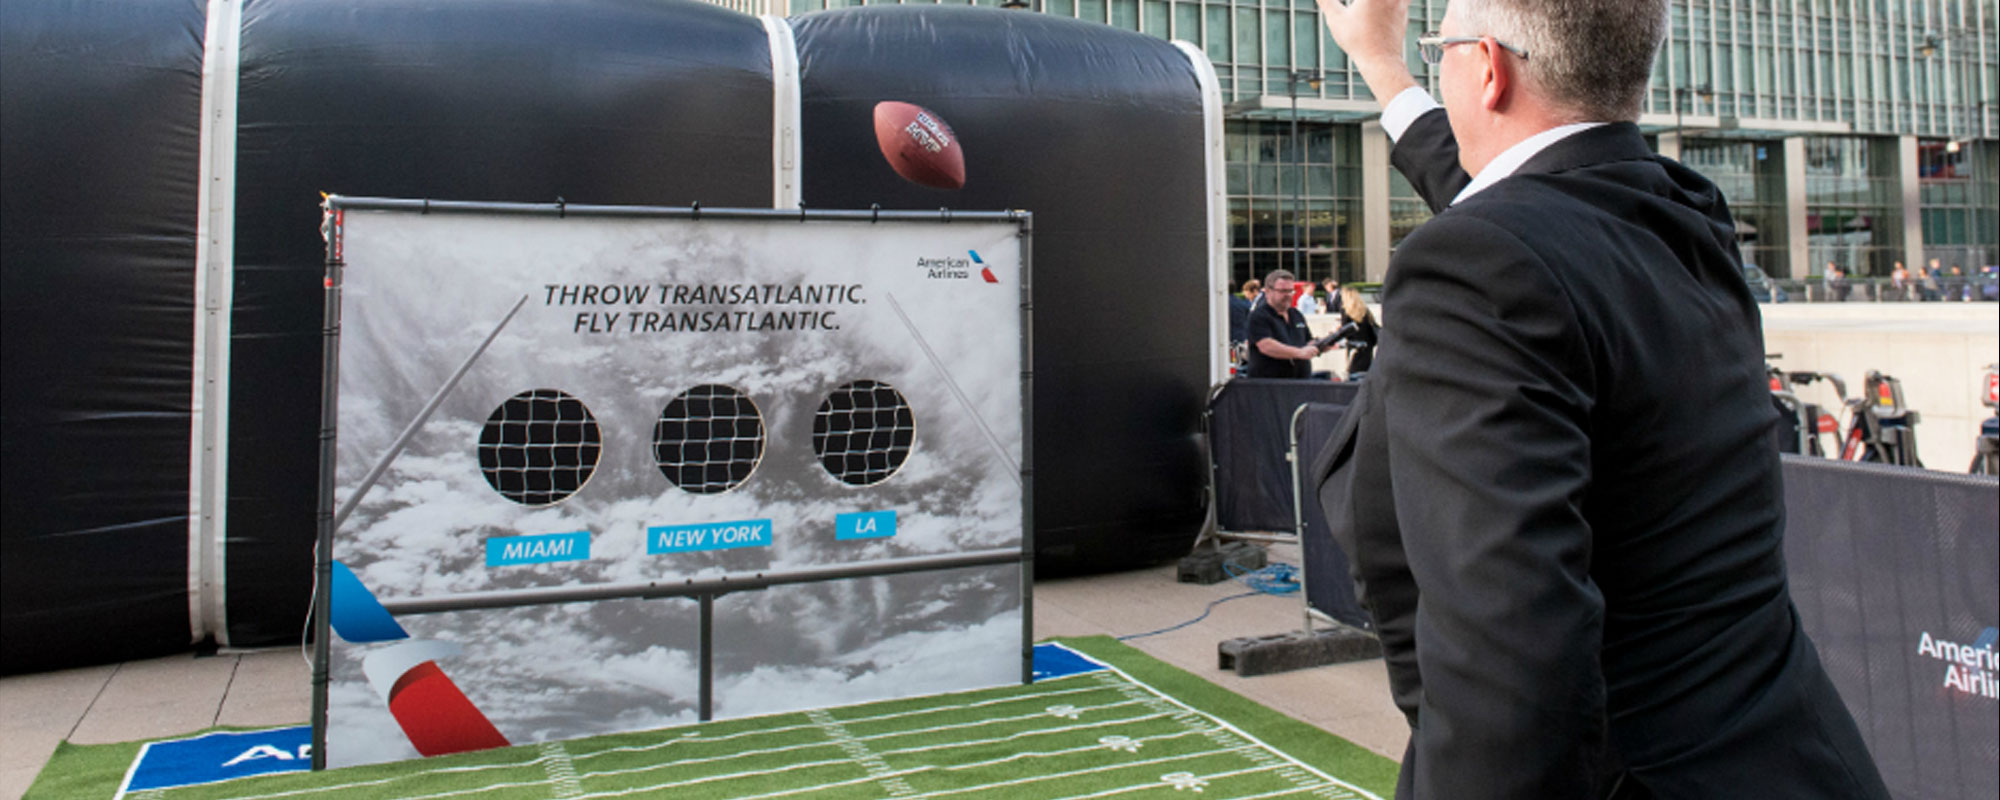 American Airlines Reach Out to Commuters with Experiential Sports Lounge in the Heart of London